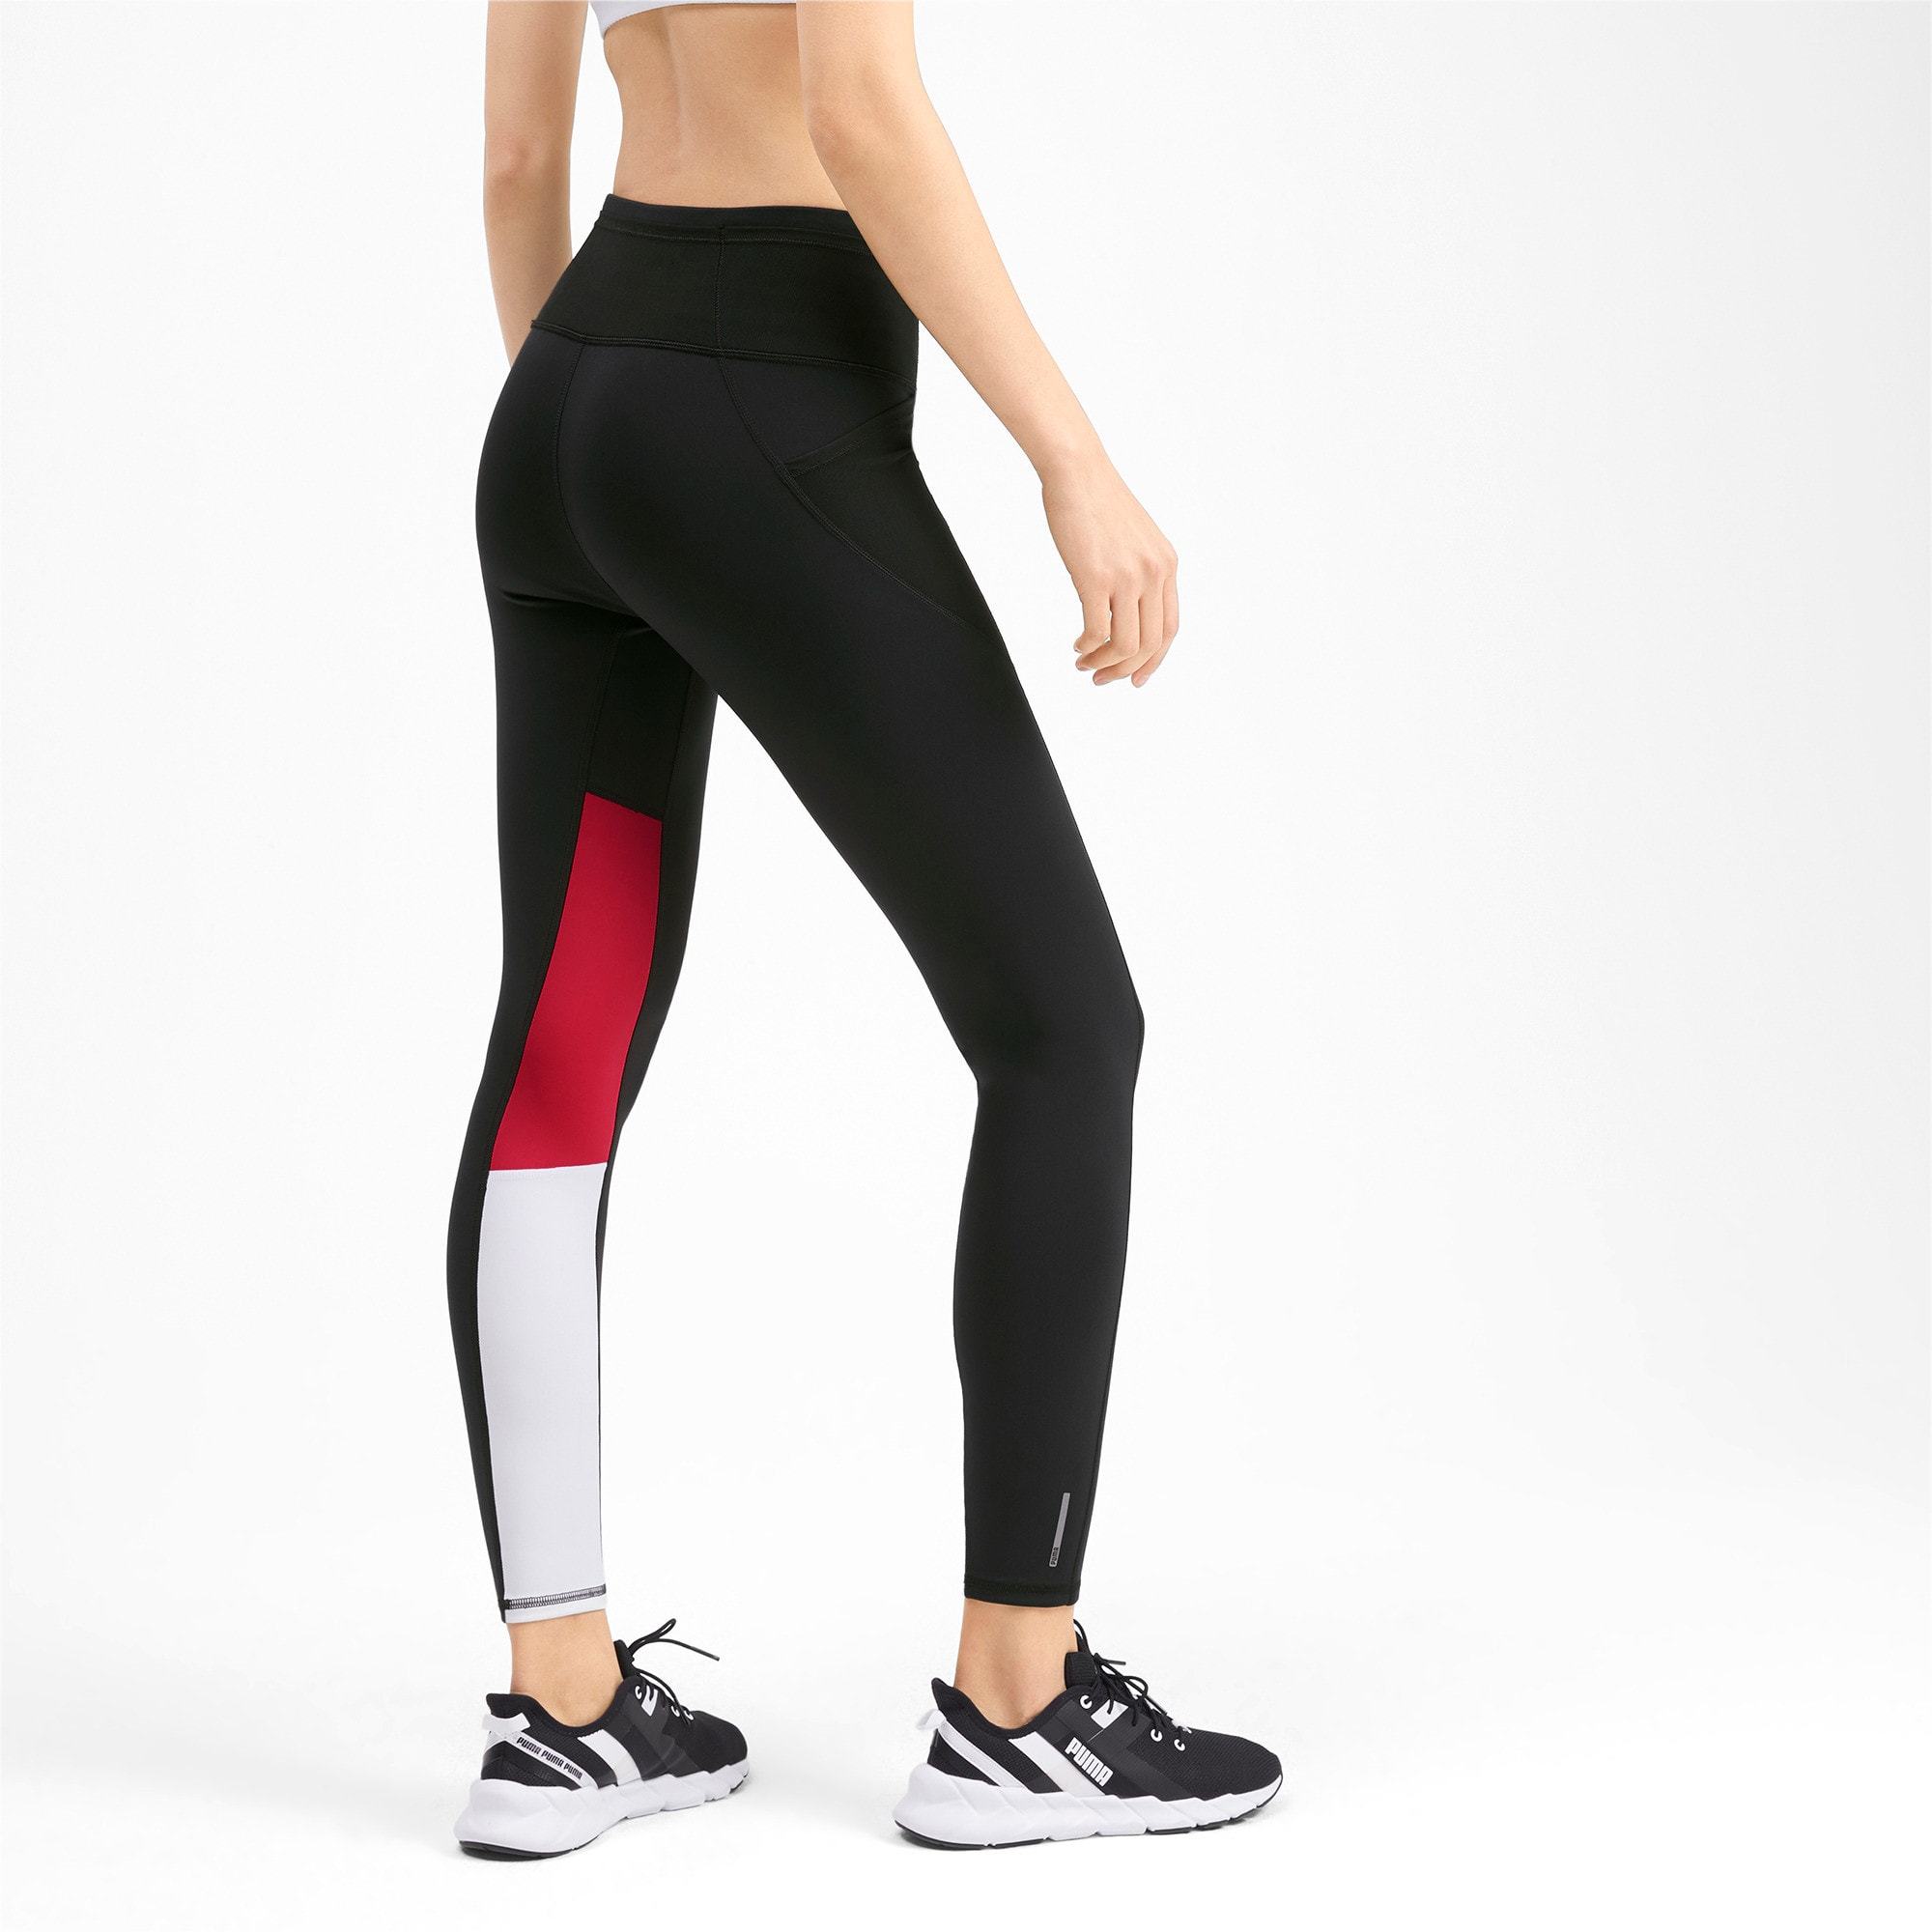 Thumbnail 3 of Feel It Women's 7/8 Leggings, Puma Black, medium